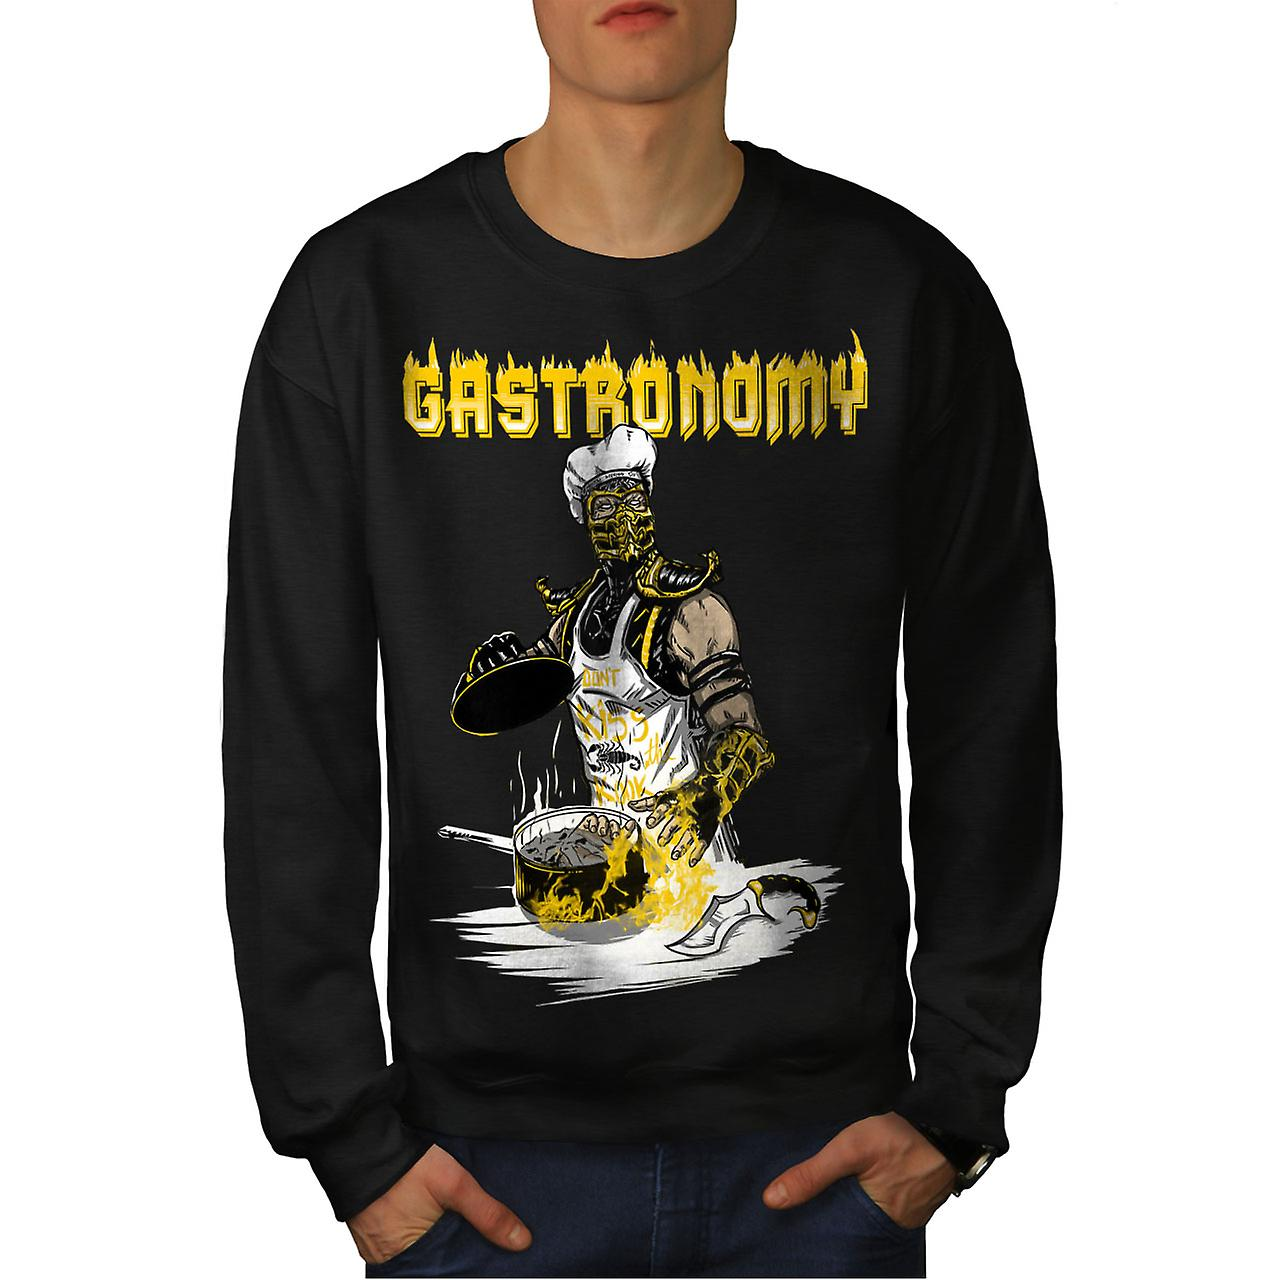 gastronomie chef koch m nner schwarzes sweatshirt. Black Bedroom Furniture Sets. Home Design Ideas